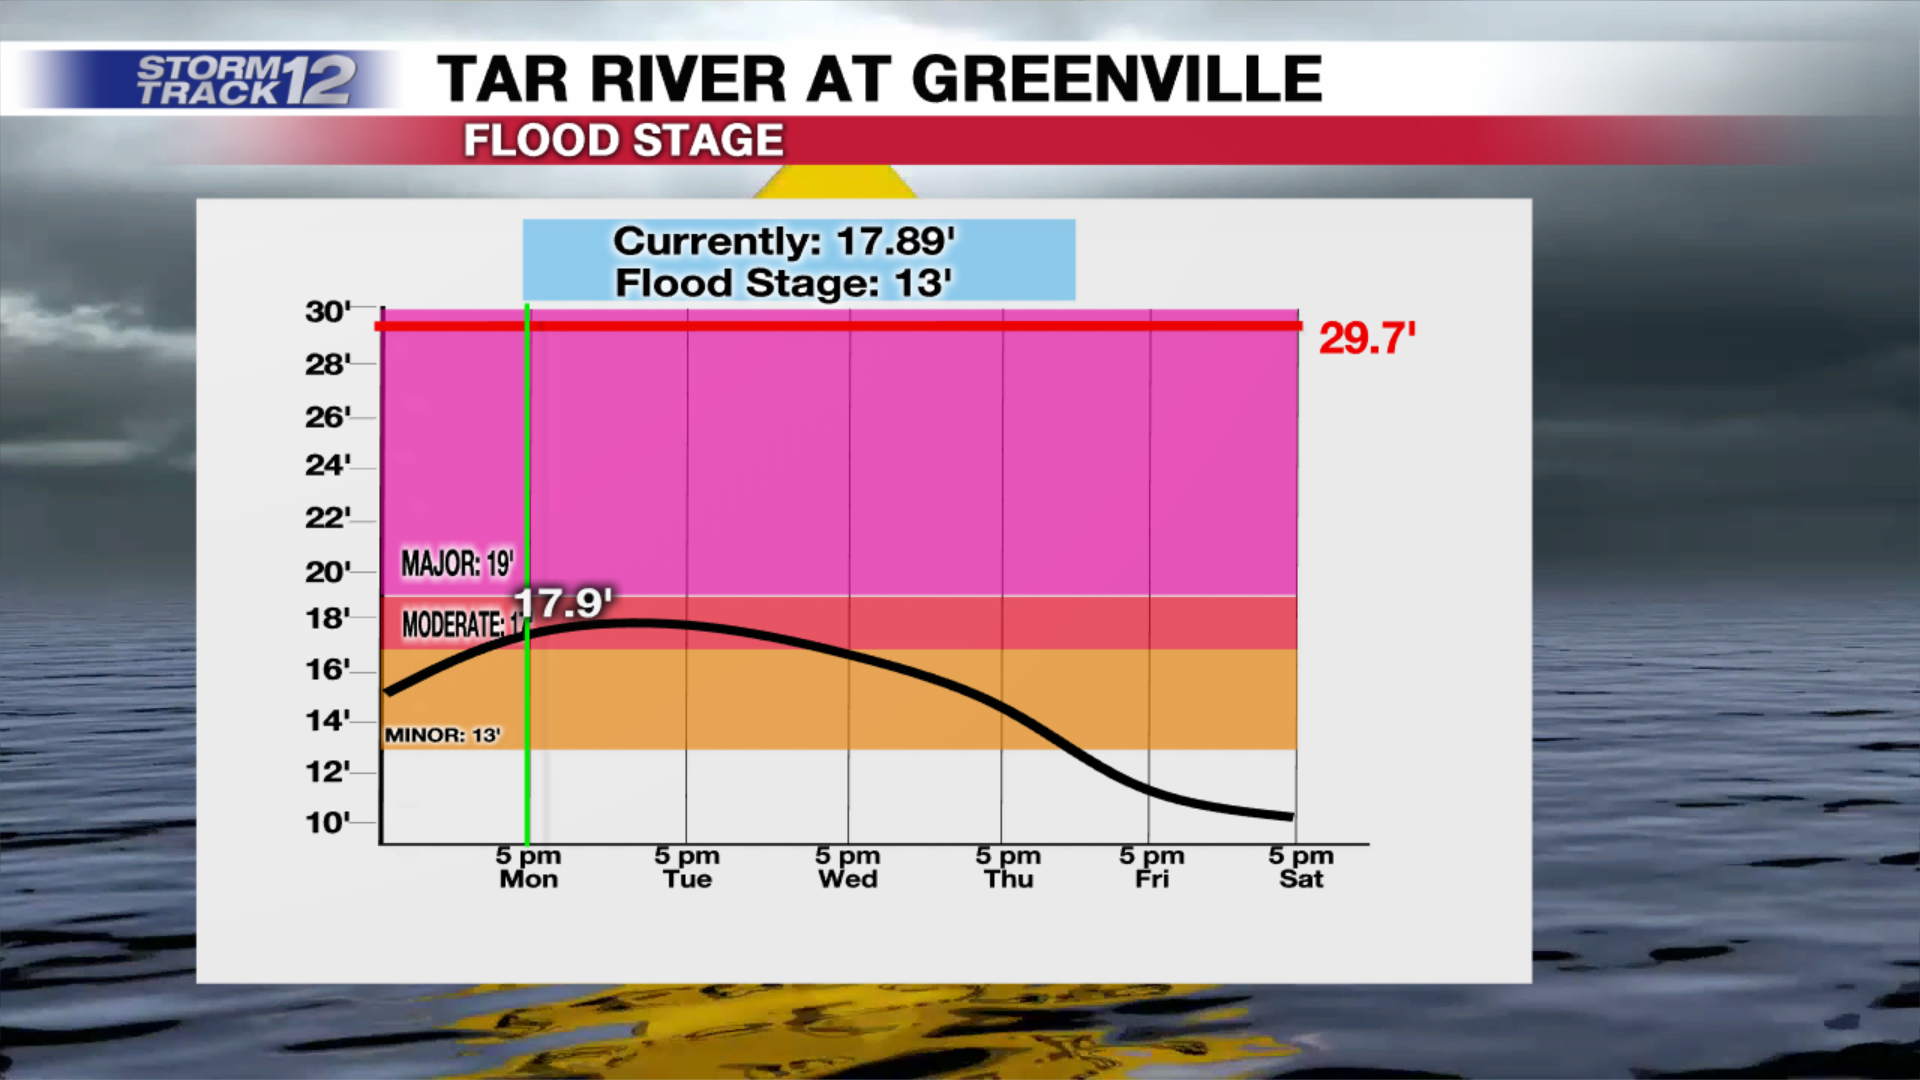 5-1-17-flood-map-tar-river-at-greenville-1493675849841-6626845-ver1-0.png